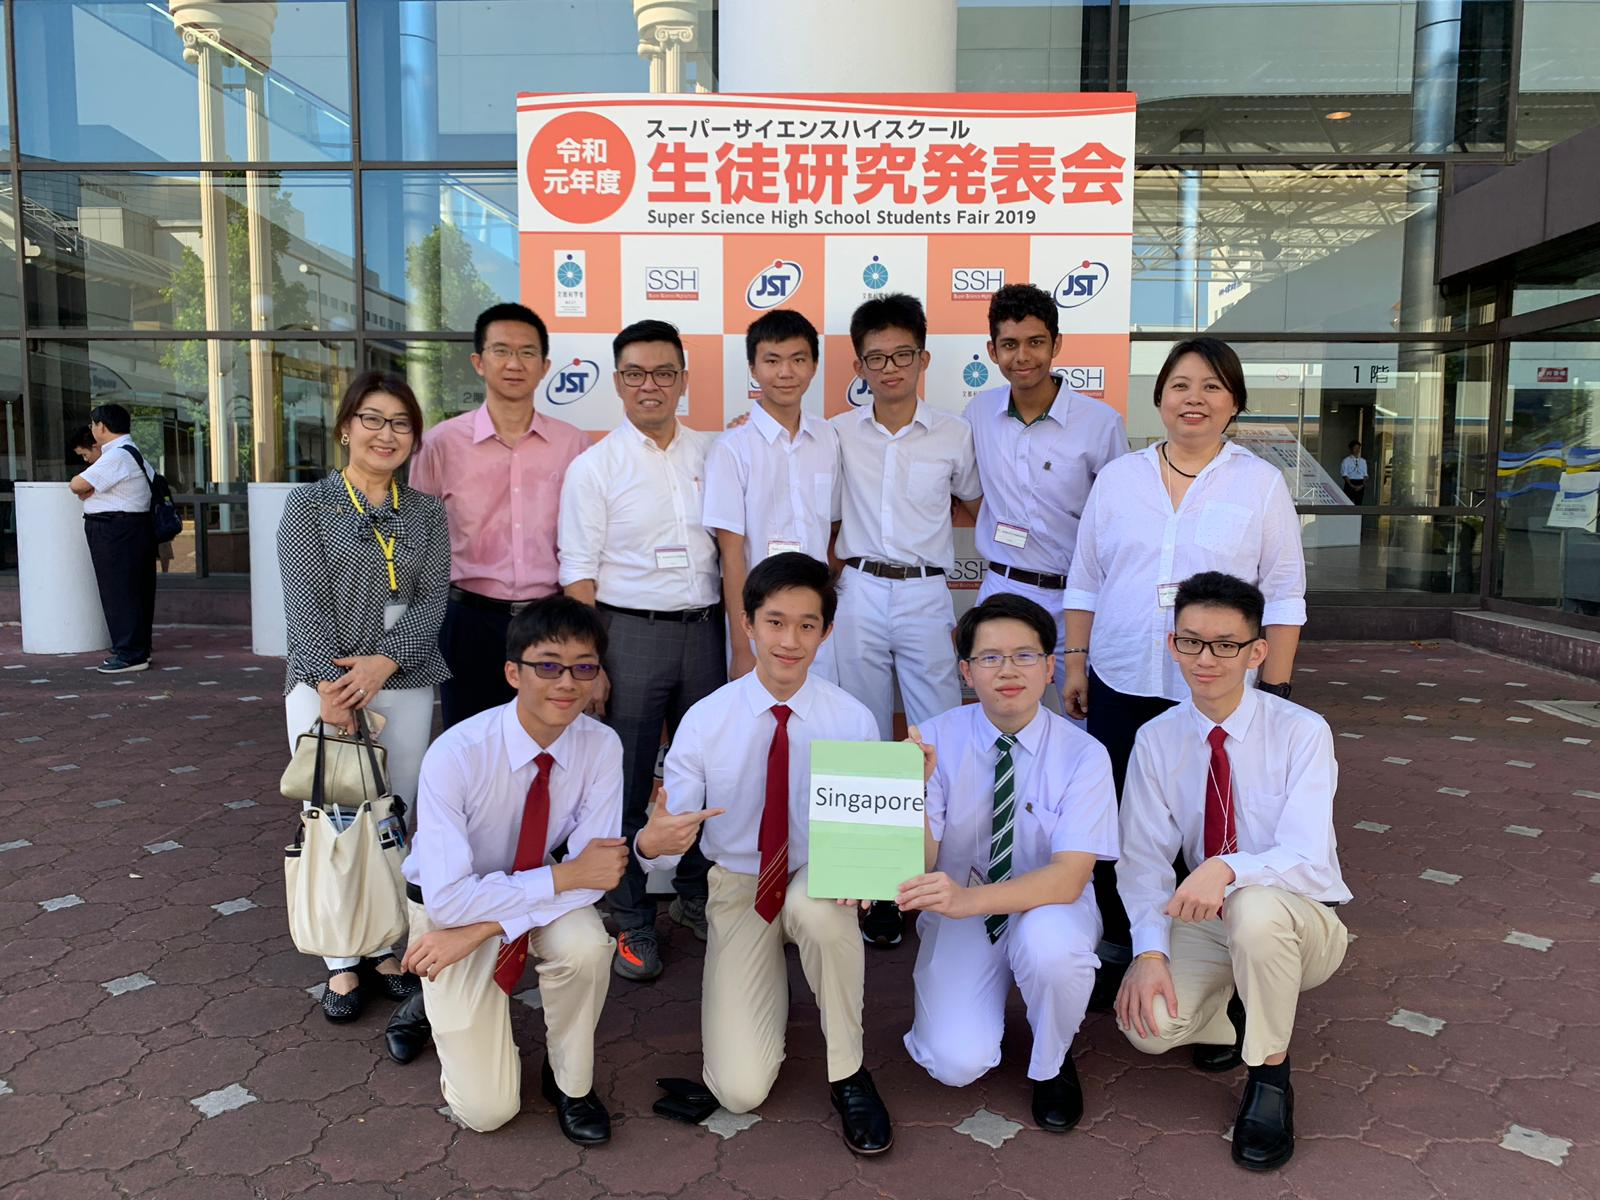 Super Science Highschool Students Fair-Group Photo outside Exhibition hall.jpg